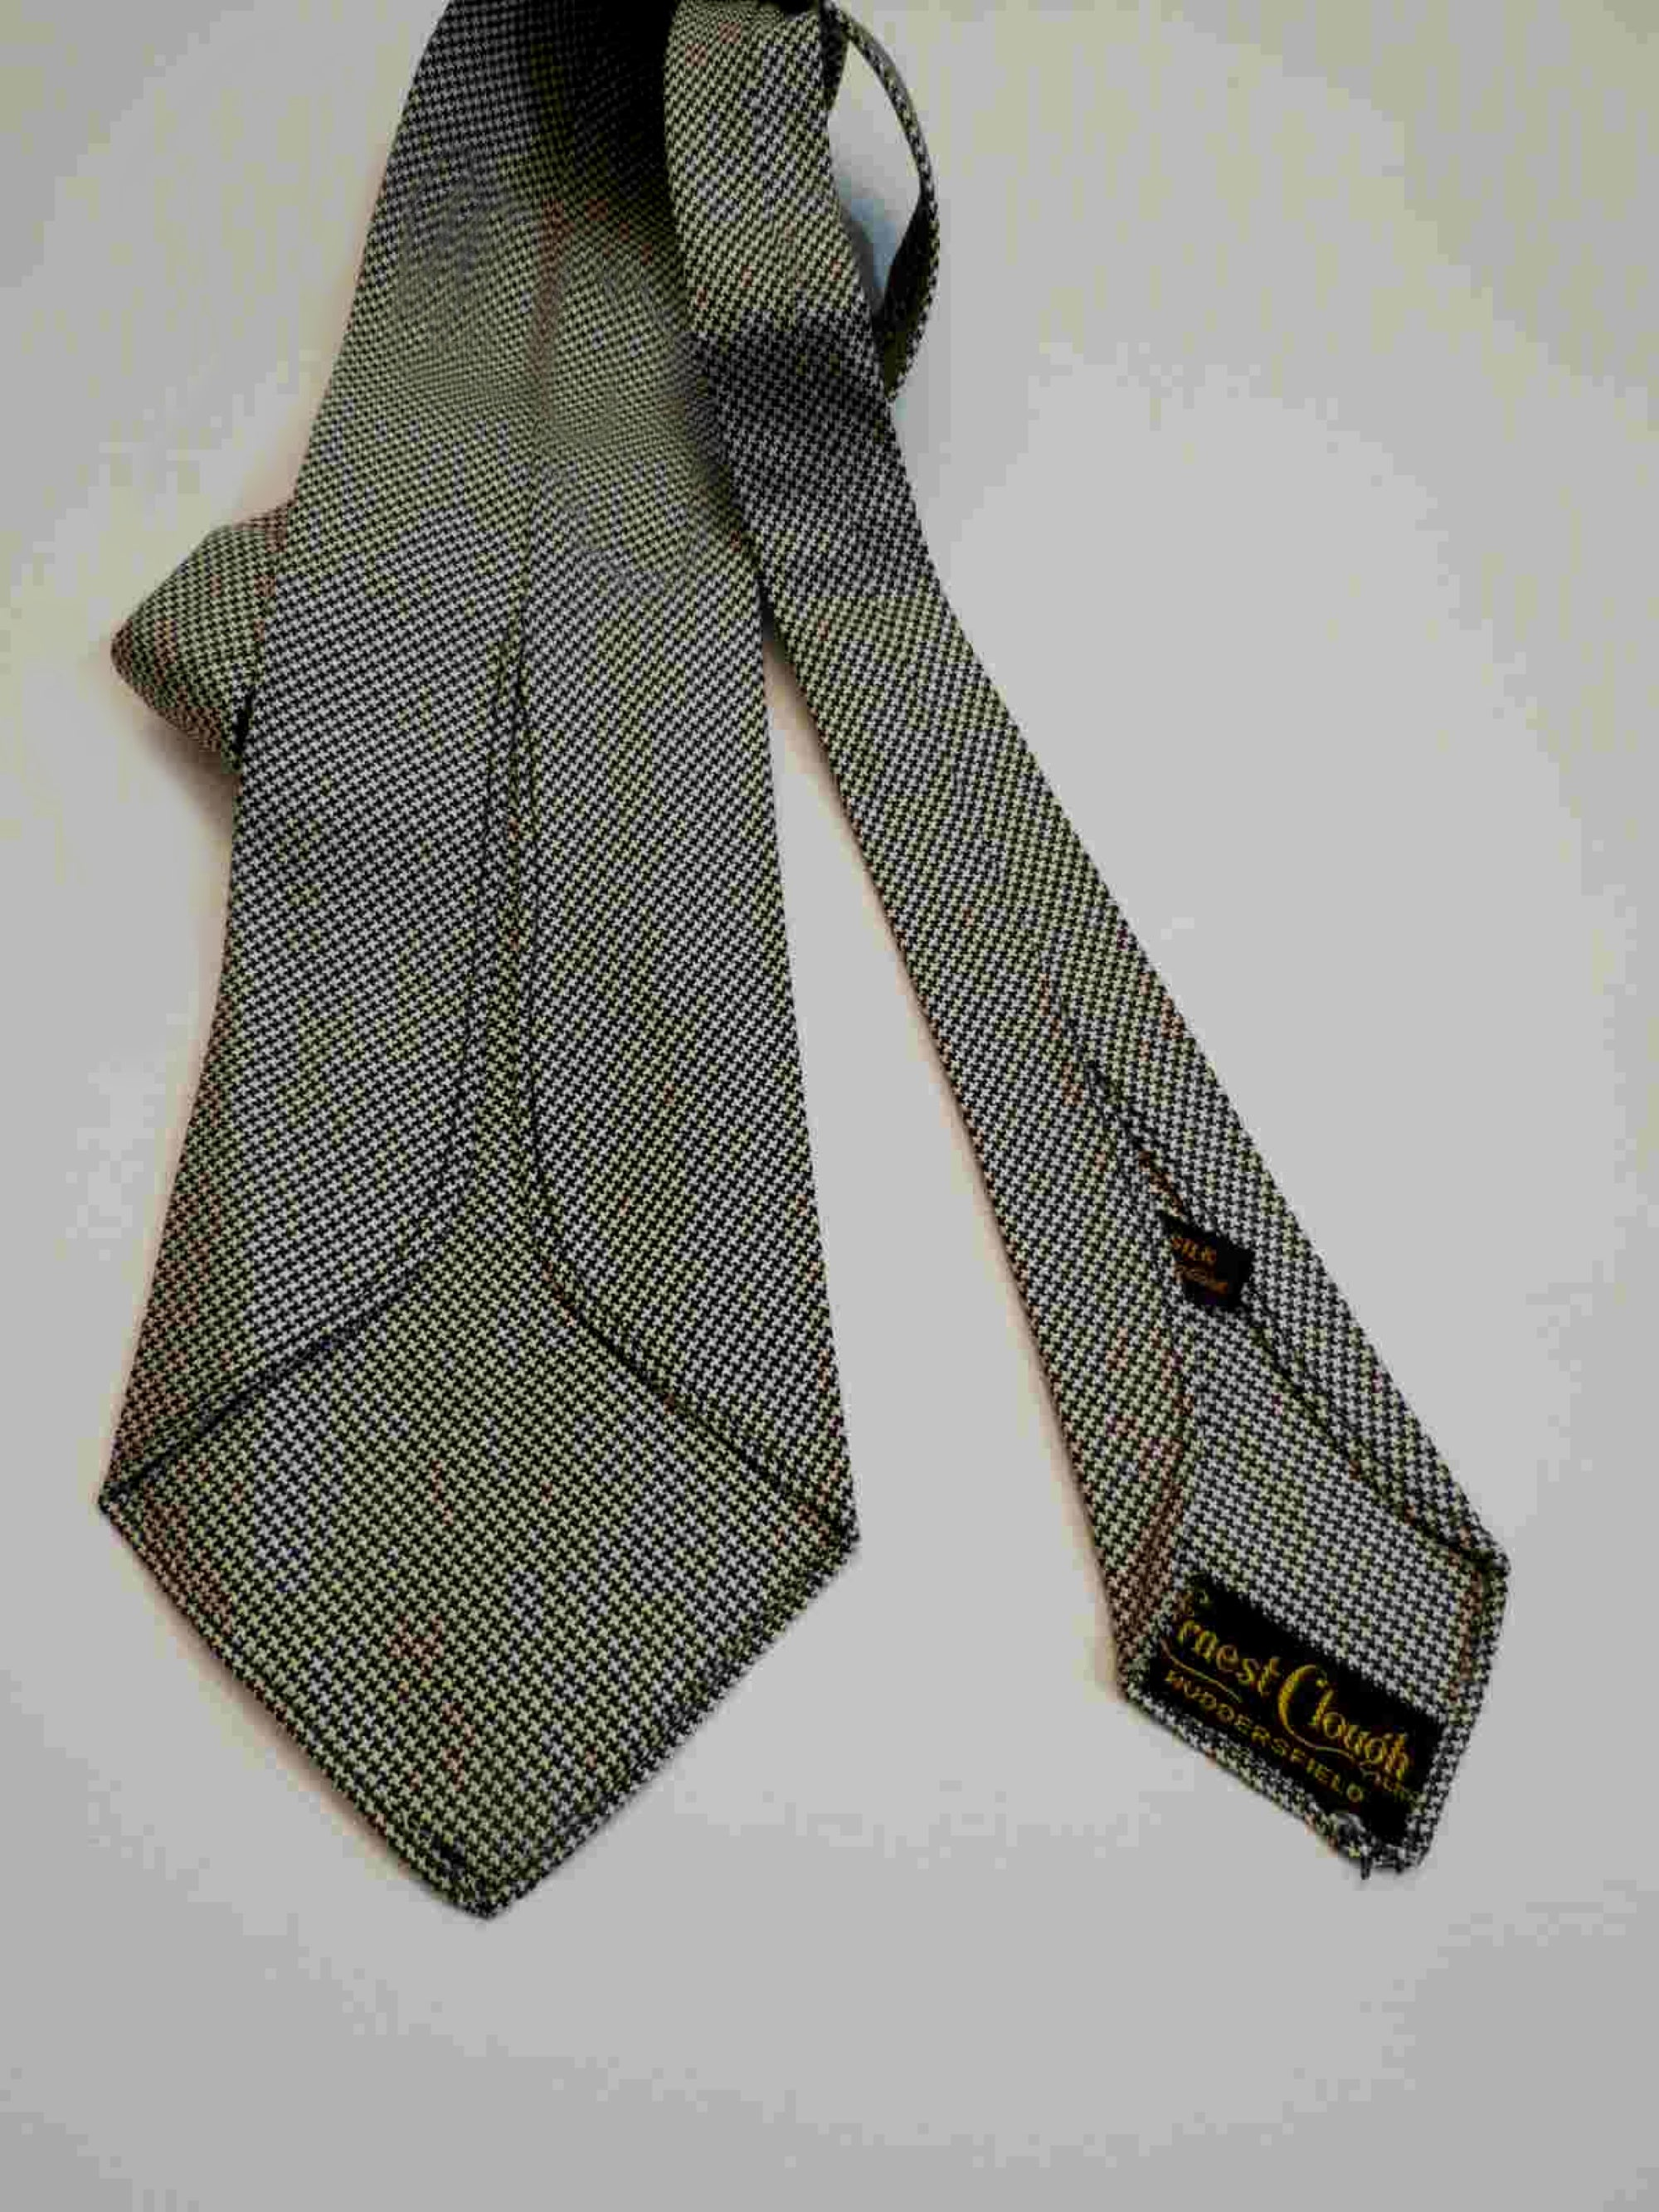 Vintage Houndstooth Silk Tie by Ernest Clough - 1940s